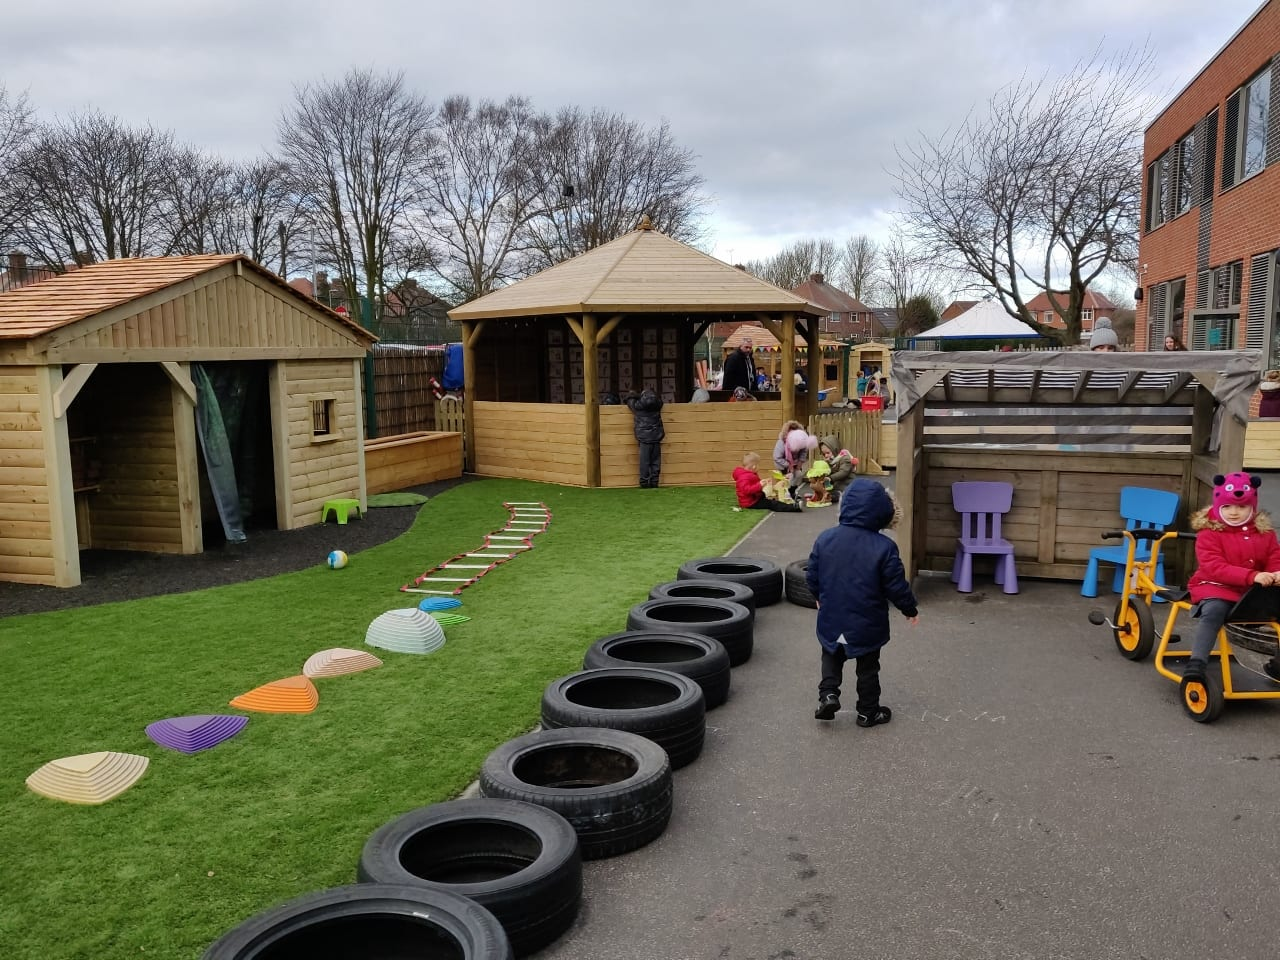 New foundation outdoor activity space opened!